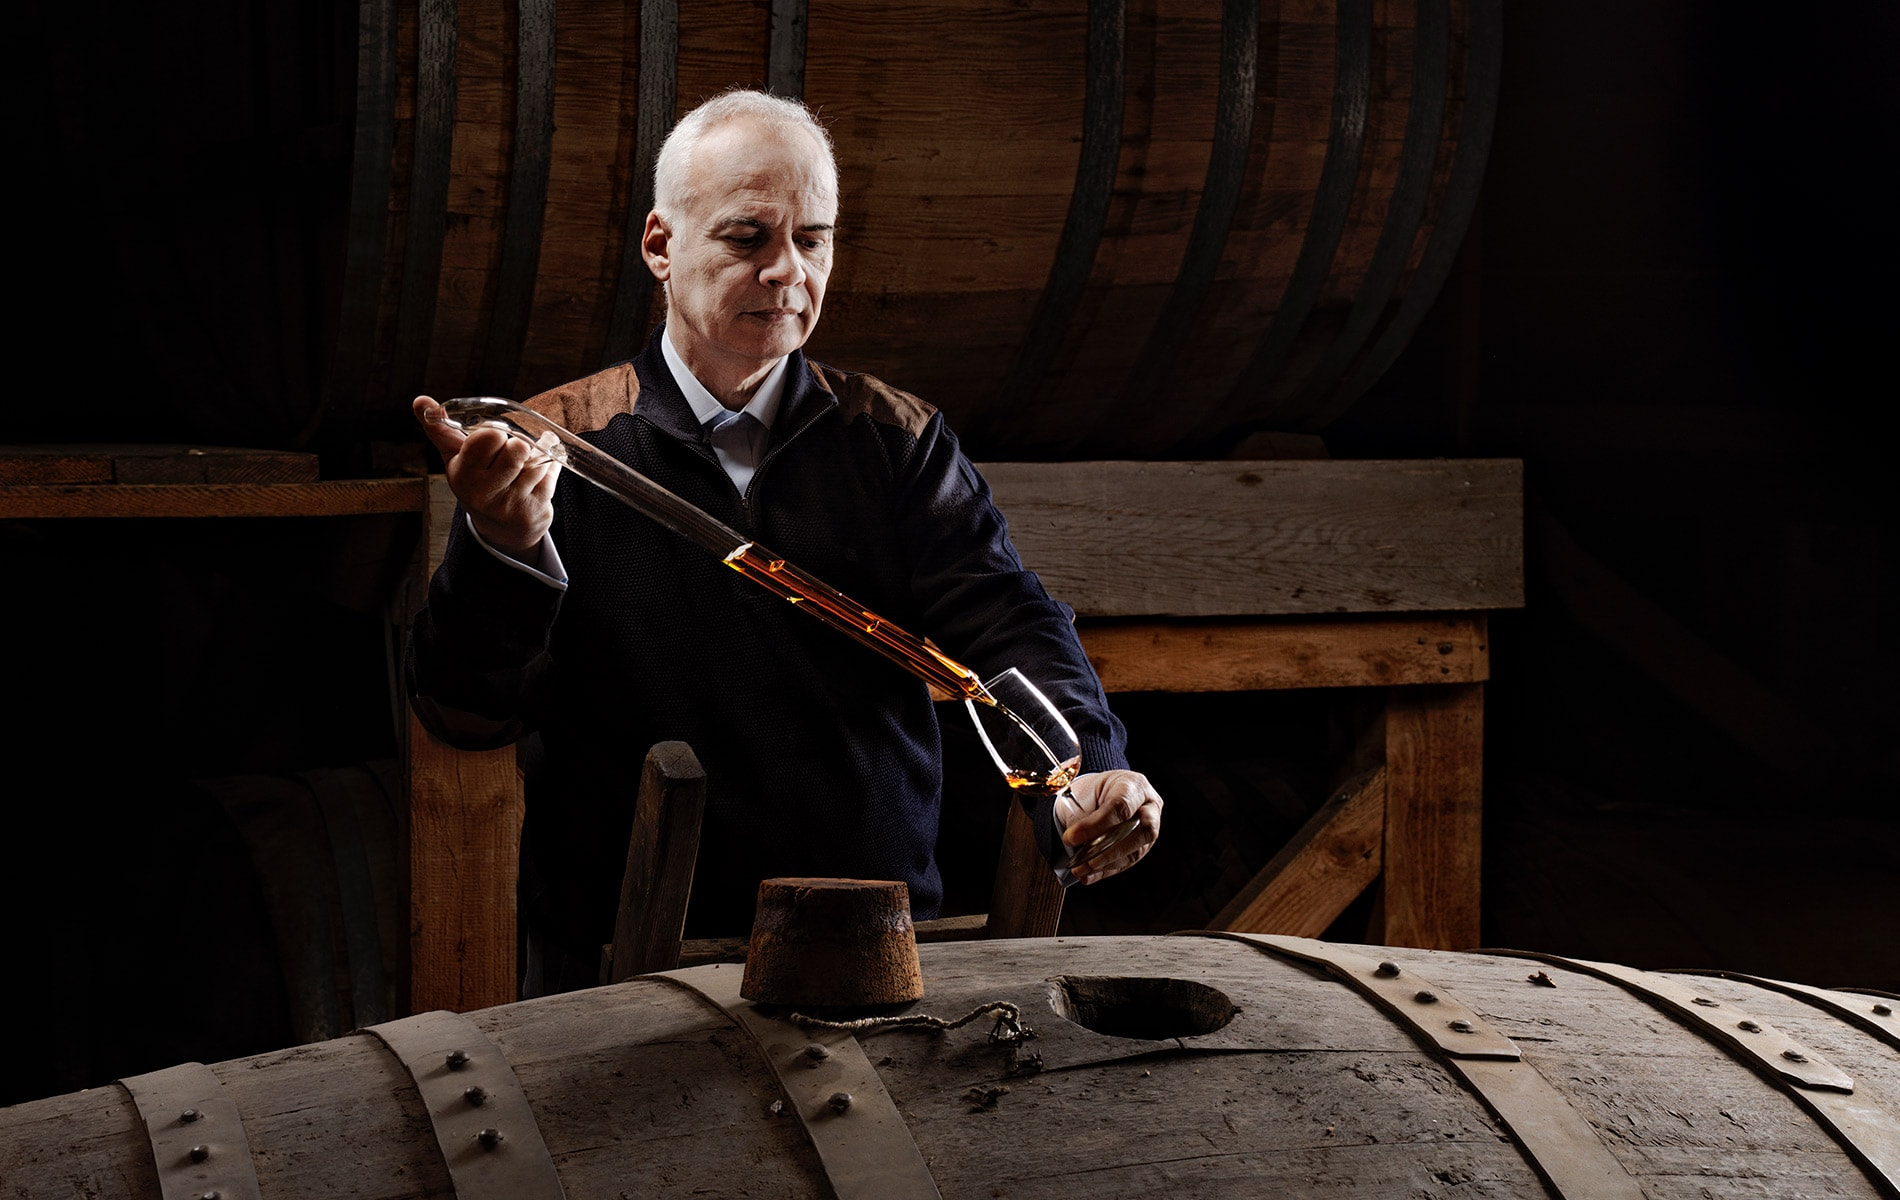 Metaxa Master Constantinos Raptis at work in the cellar at House of Metaxa in Athens, Greece